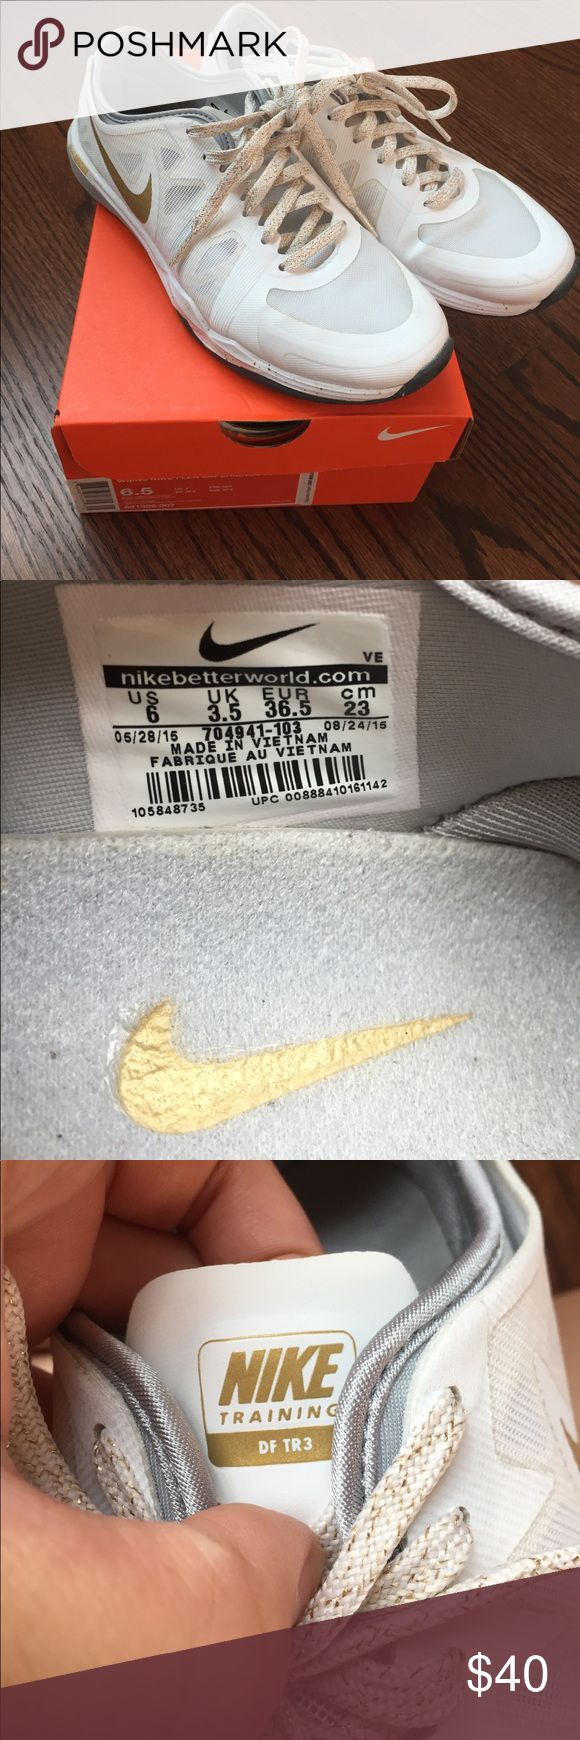 Nike dual fusion 3 training shoes Nike shoes in white and gold. Never worn outside he house. Like new. Only one scuff shown in photos. Very light weight. Only getting rid of because they're a little tighter than I'd like. Nike Shoes Sneakers